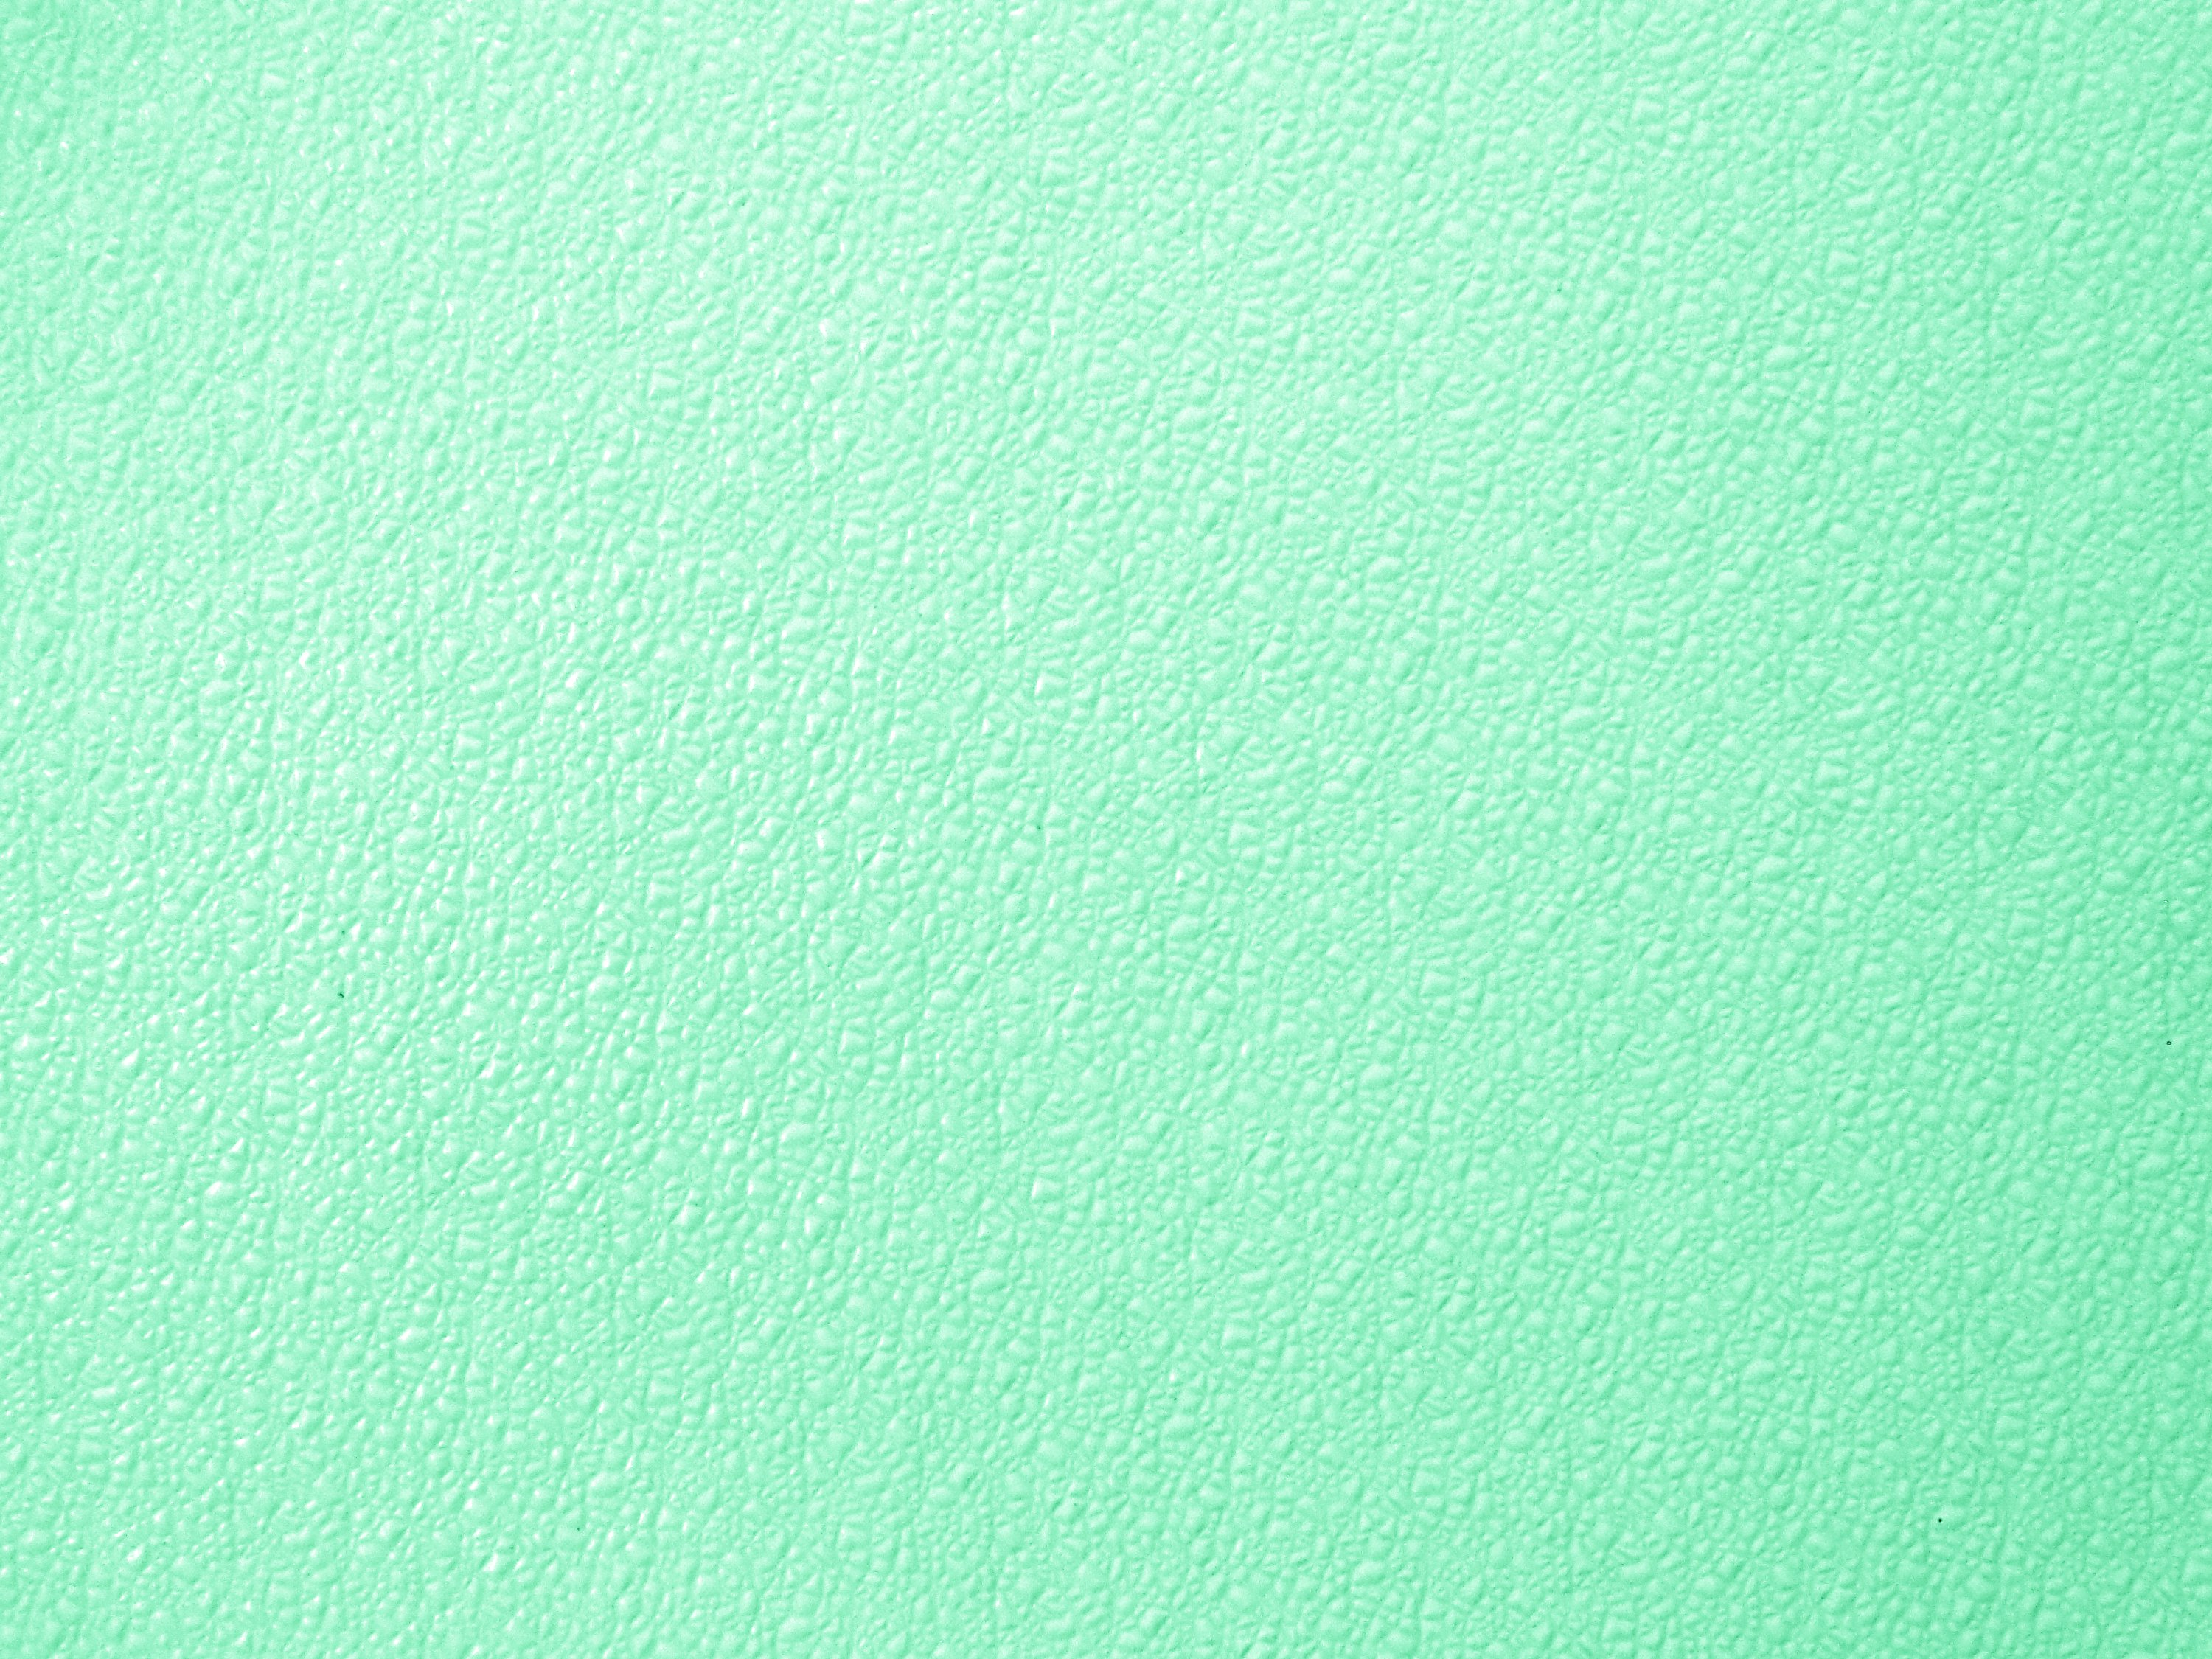 Mint Color Background Bumpy mint green plastic 3000x2250